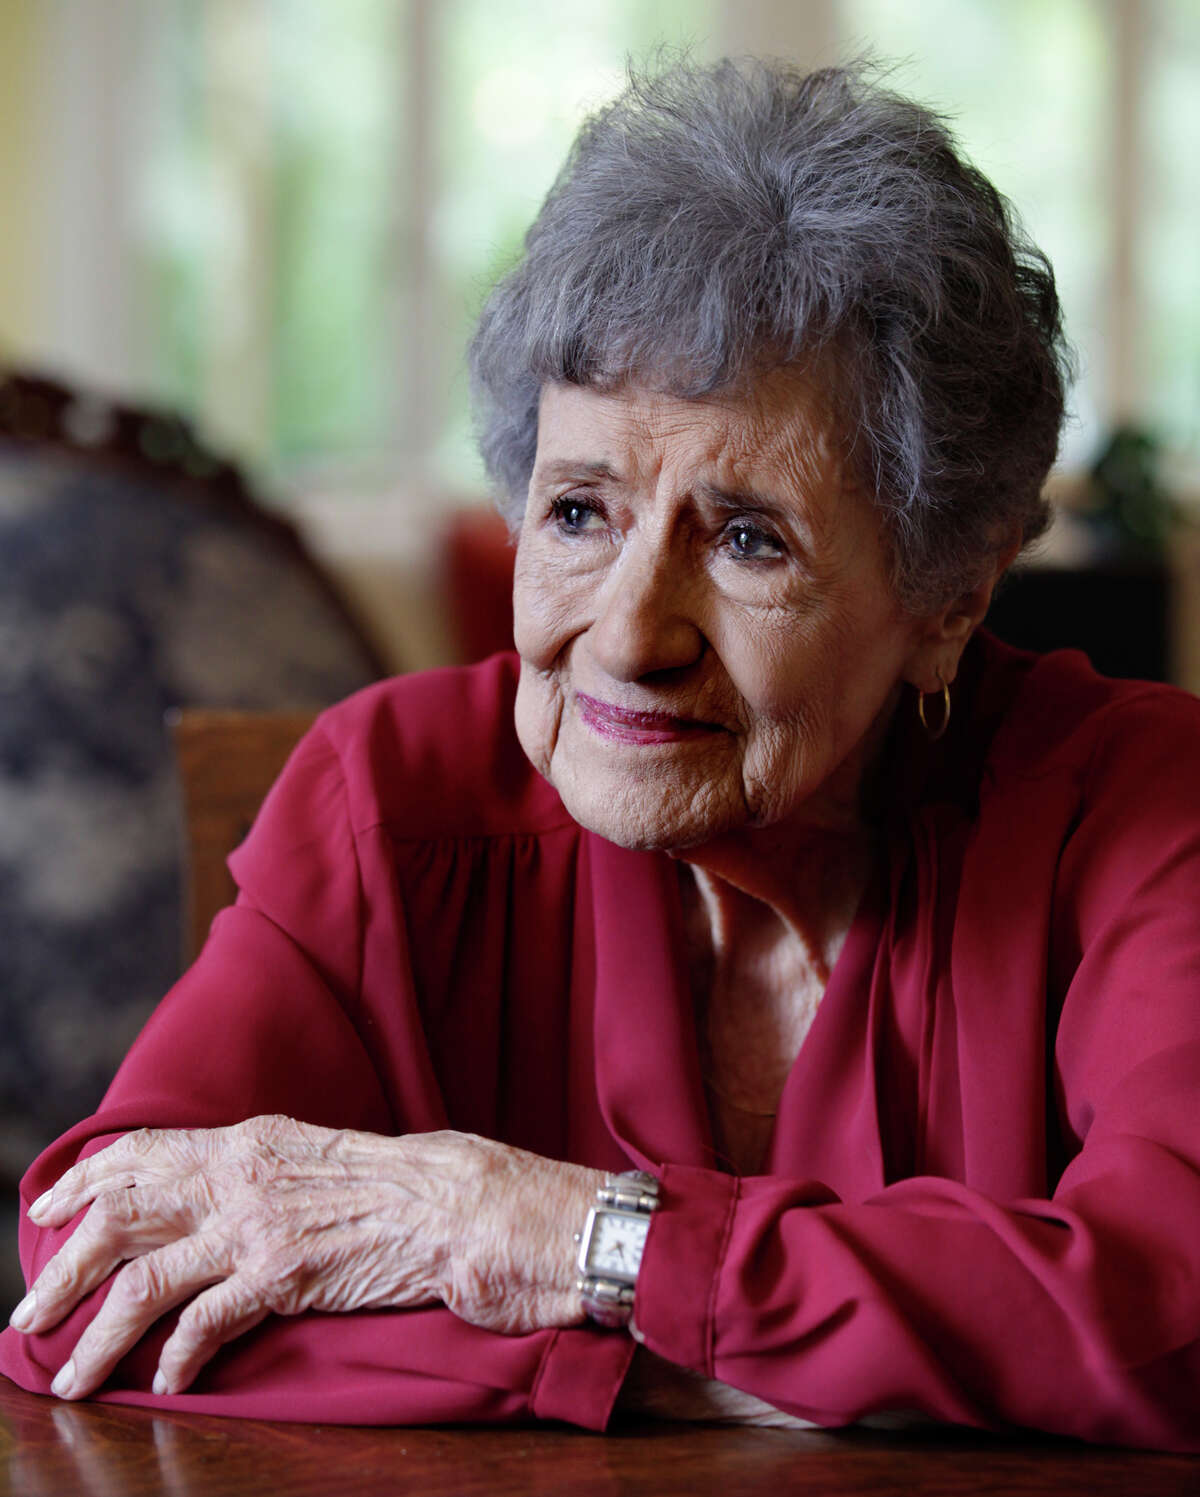 Mary Treviño, founder of the restaurant El Mirador, turned 100 in 2010, and celebrated inside El Mirador, the restaurant she helped found in 1967 with husband Julian. The restaurant was a favorite of city officials and leadership. El Mirador continued serving sopa Azteca after Treviño's passing at 102 in early 2013, but eventually son Julian Jr. sold the storied property in 2014.